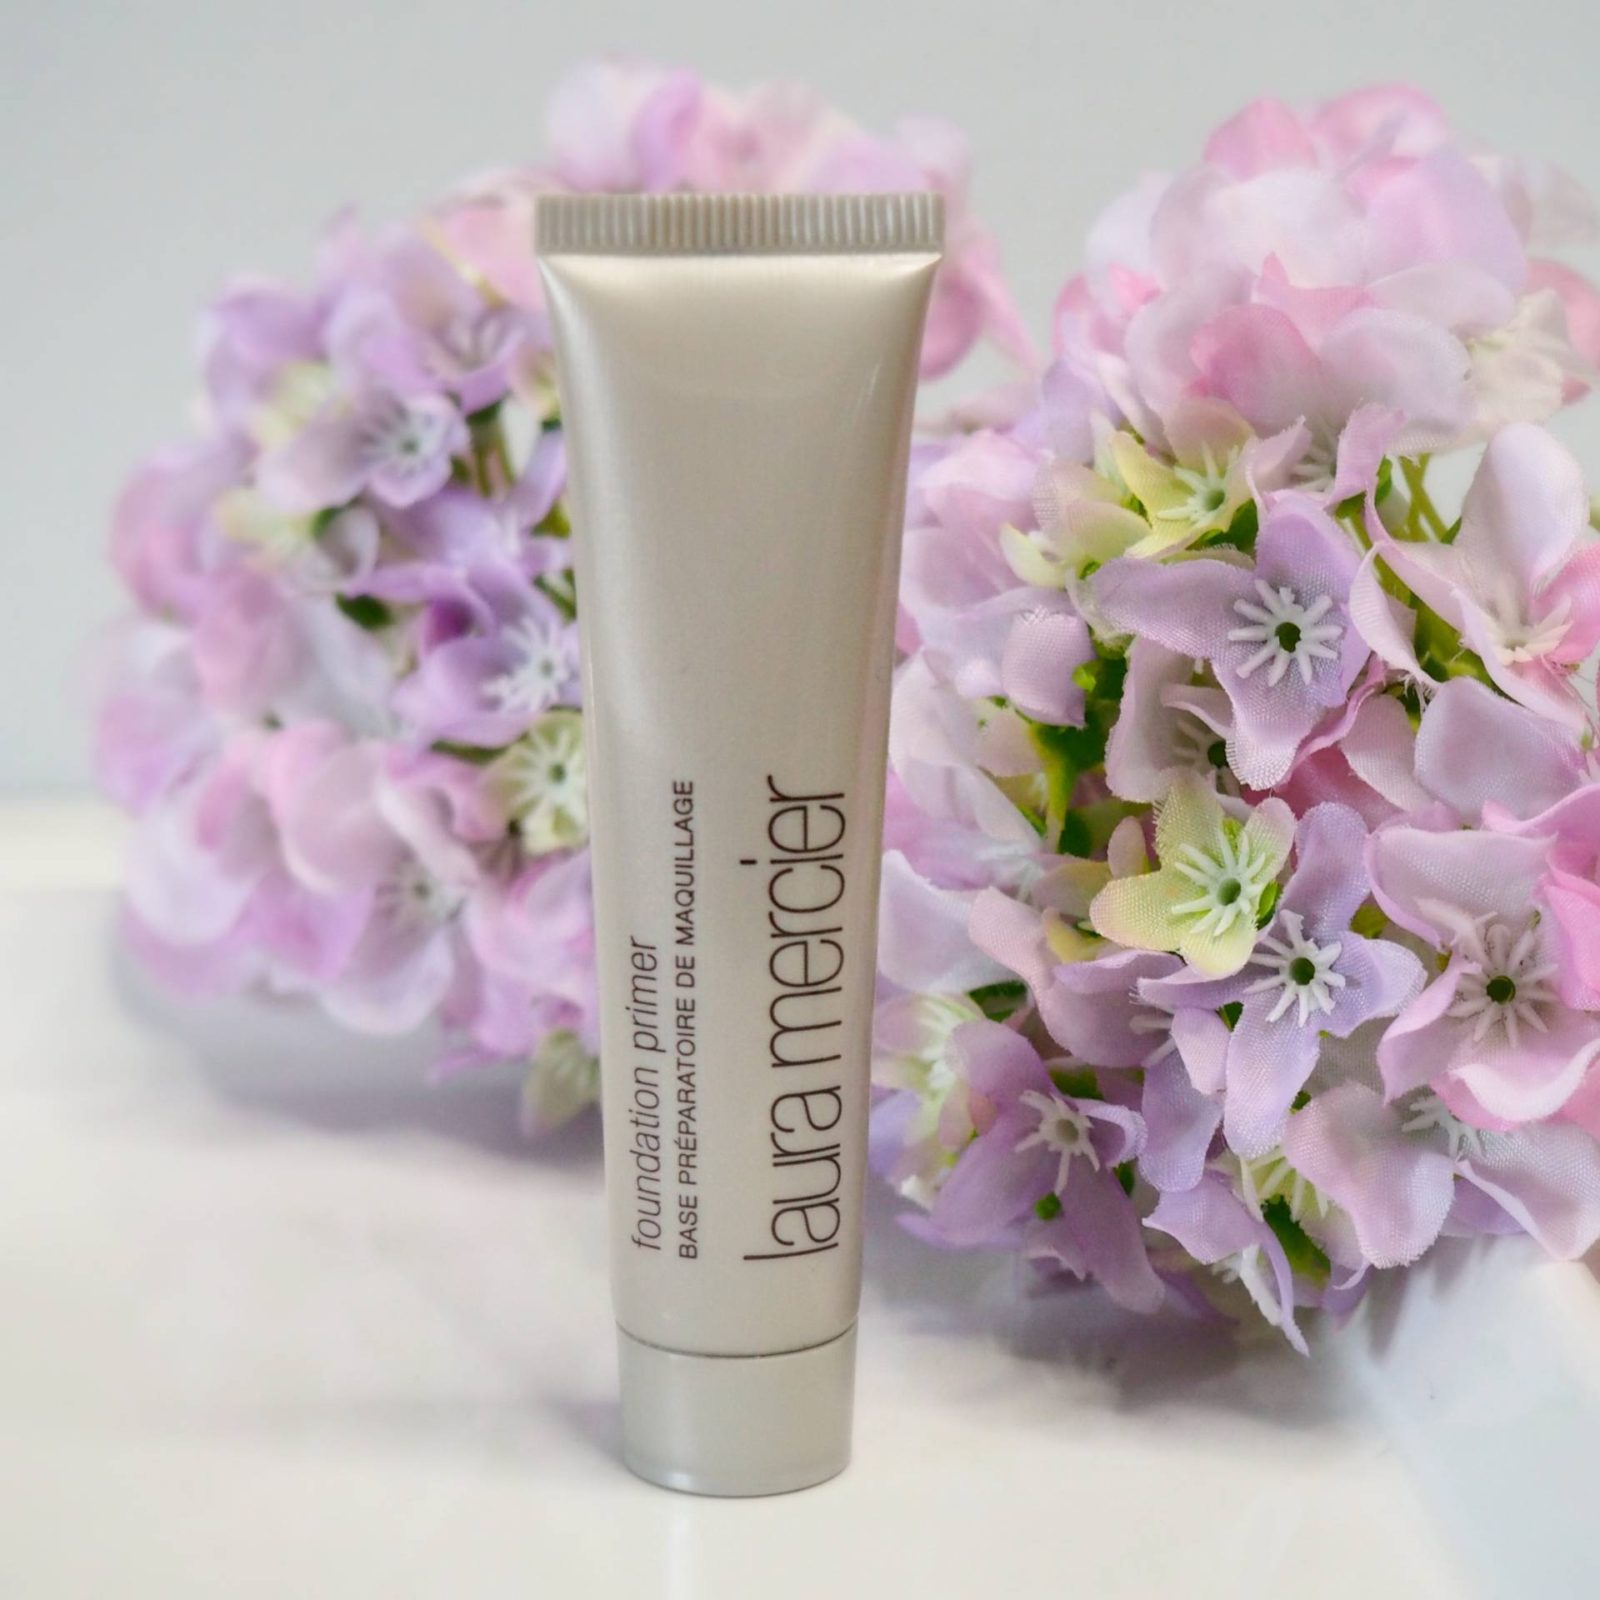 Love Me Beauty January 2017 Laura Mercier Primer